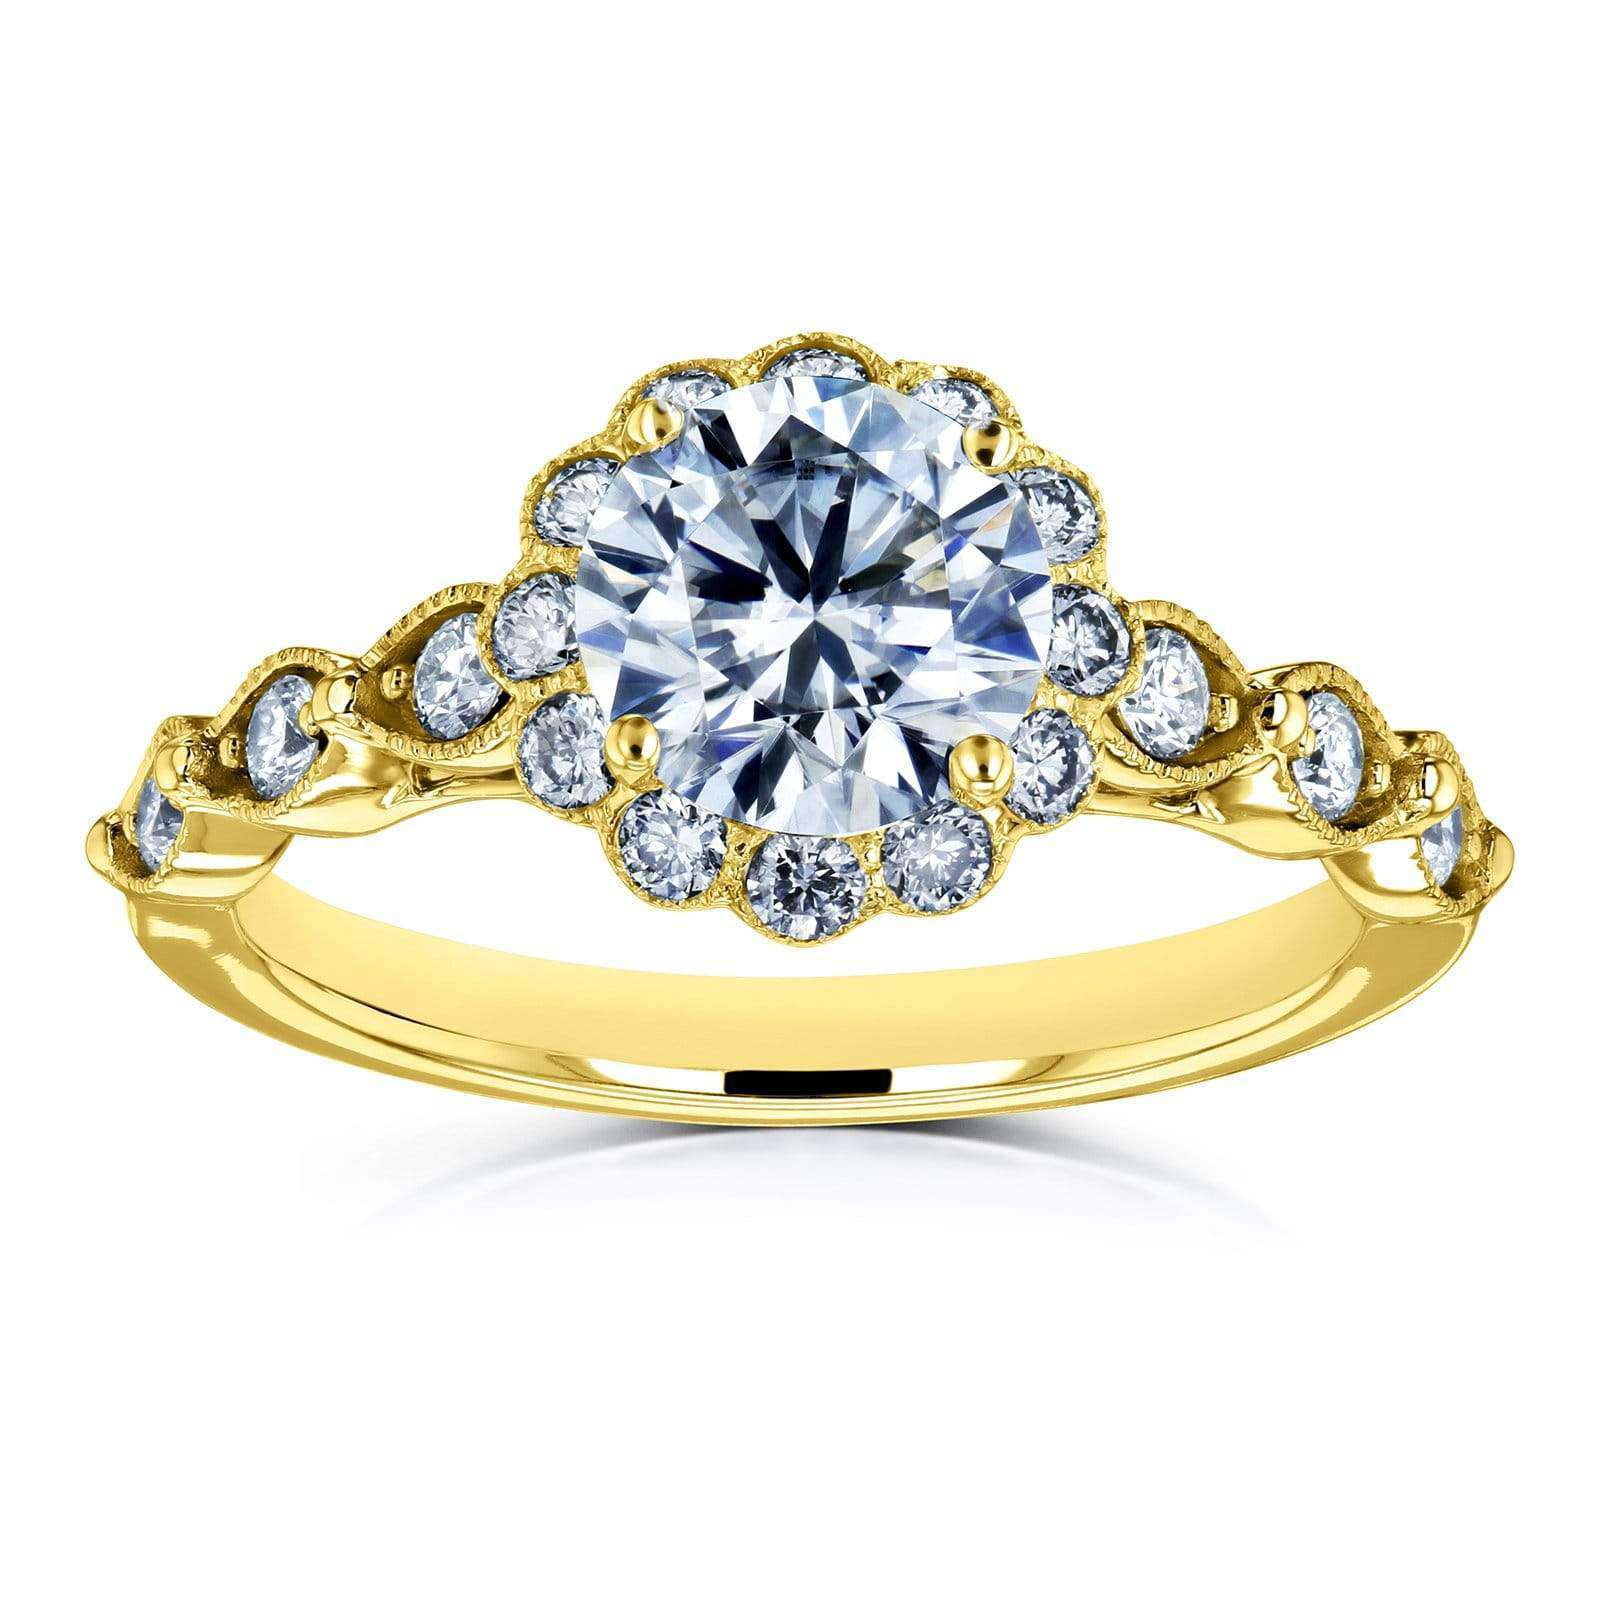 Coupons Round Moissanite and Diamond Floral Engagement Ring 1 1/3 CTW 14k Yellow Gold (FG/VS GH/I) - 9